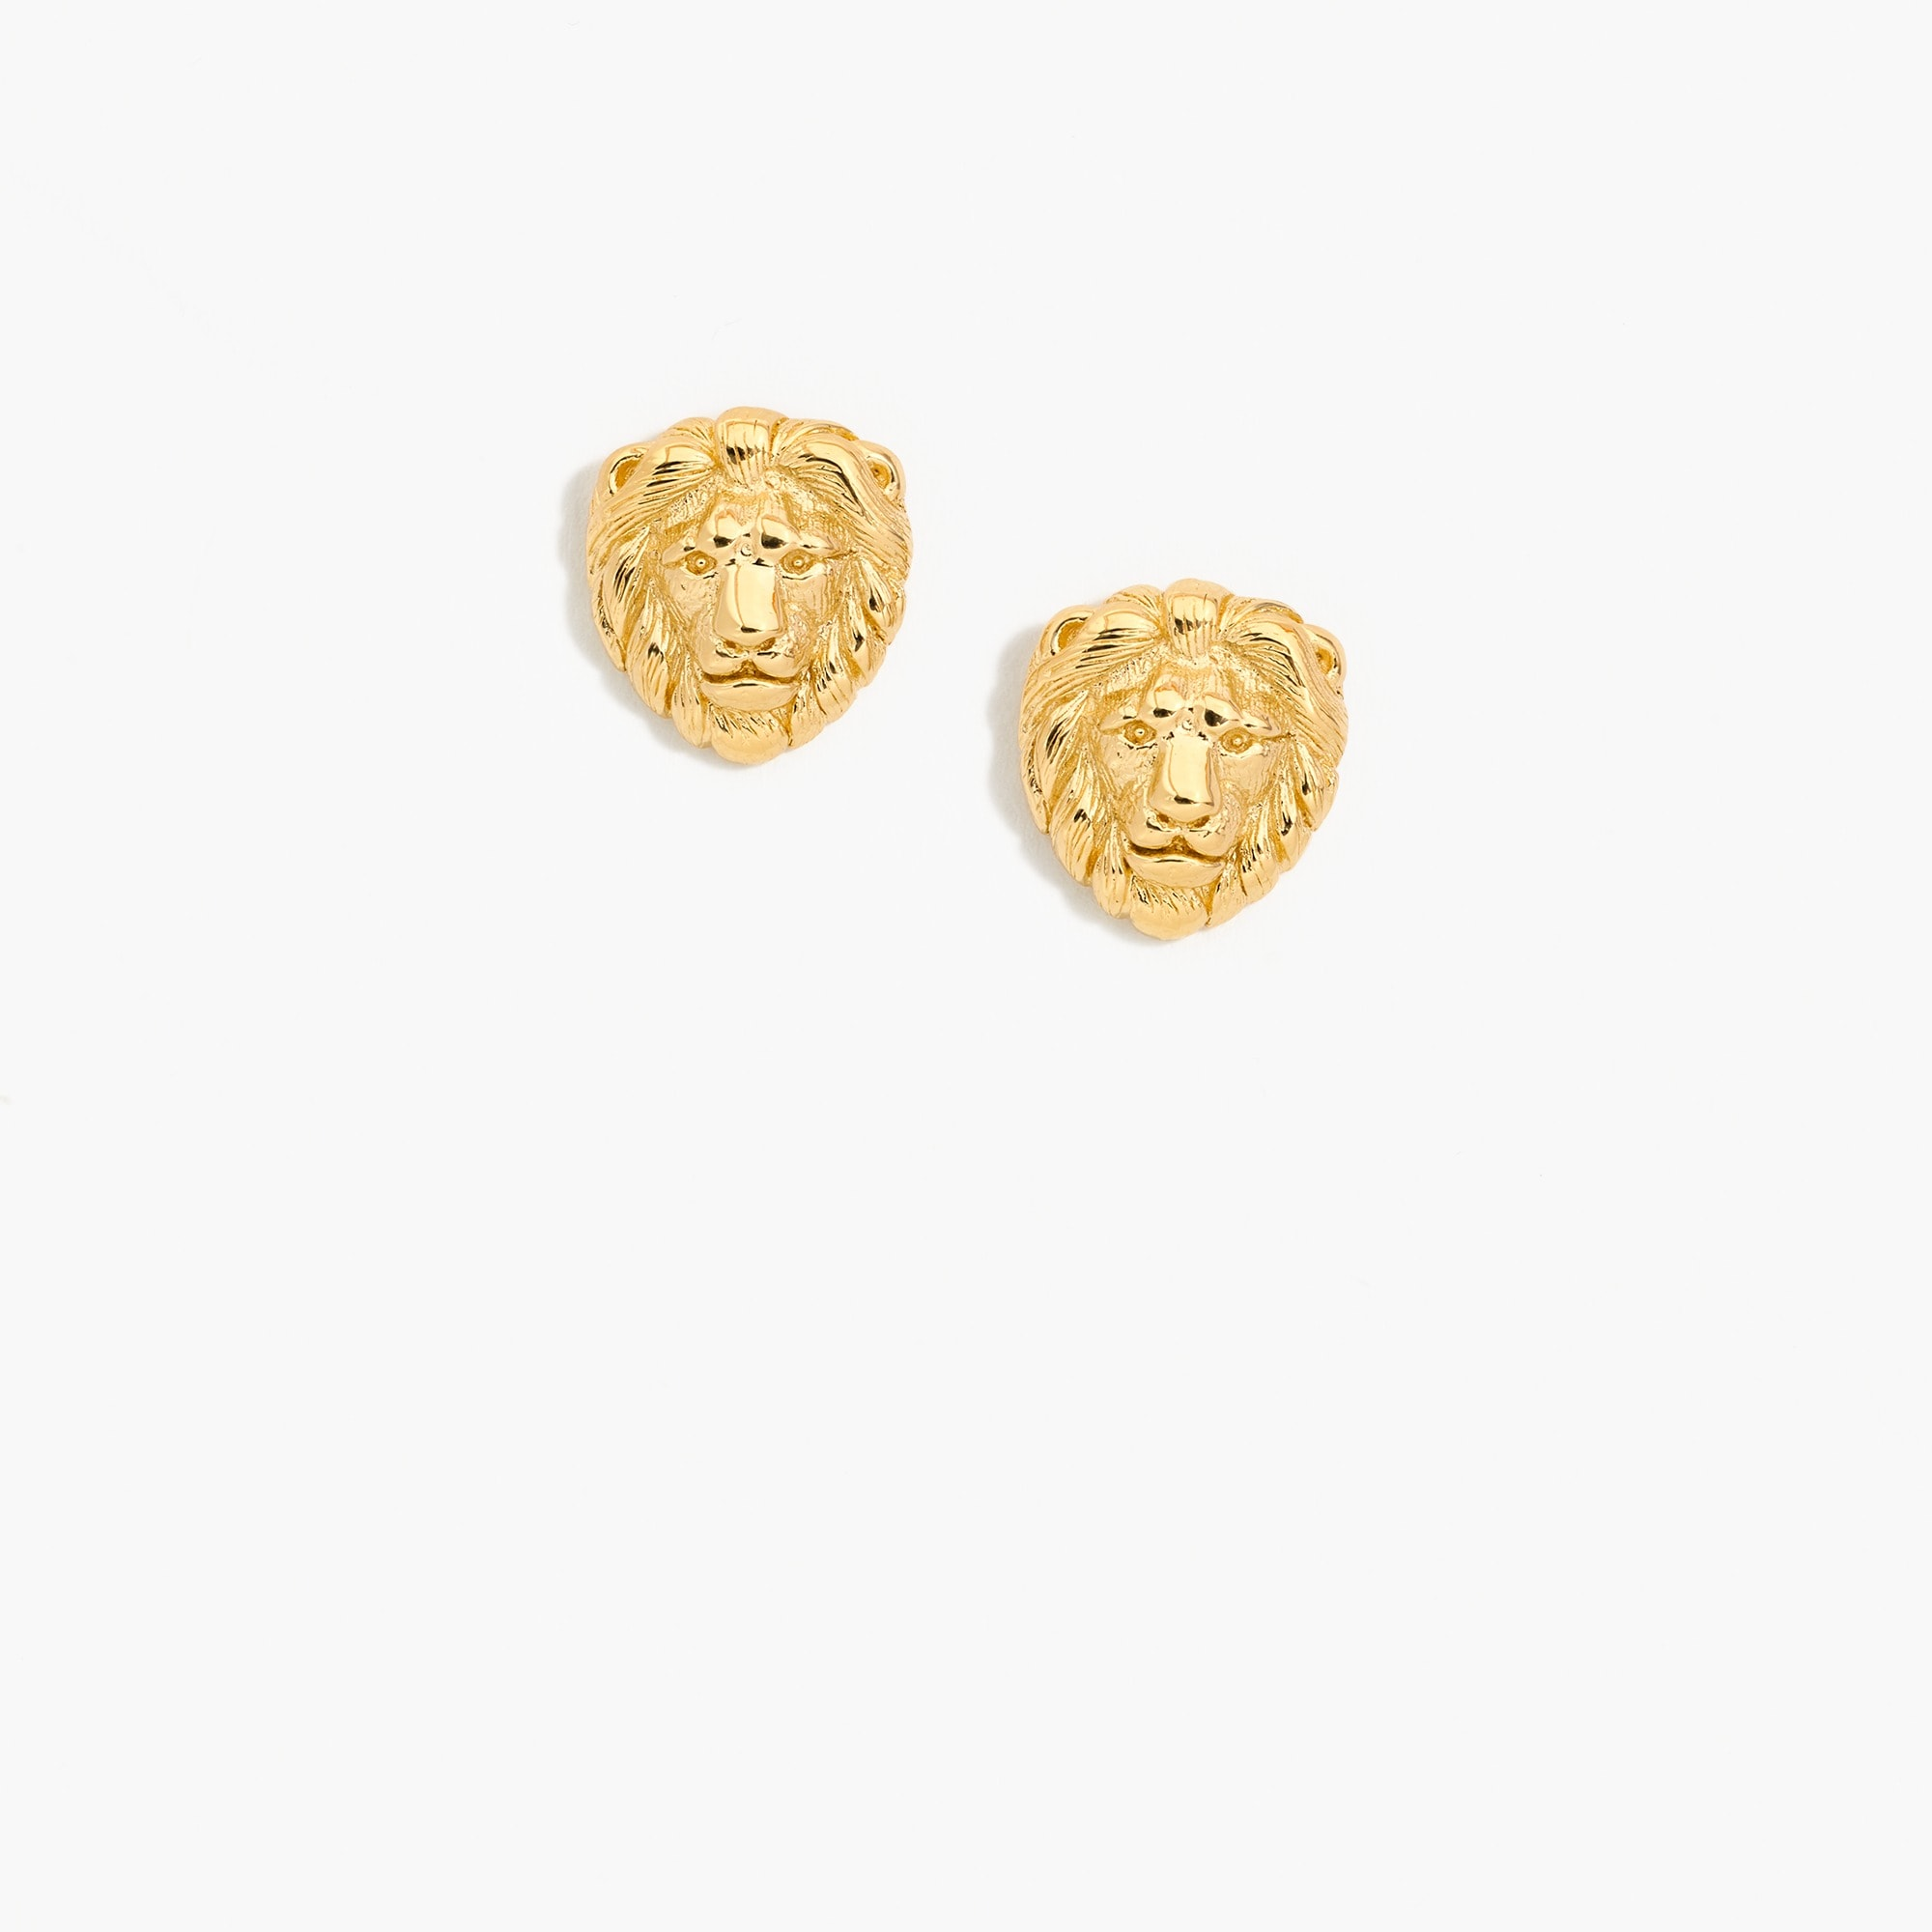 Image 1 for Demi-fine 14k gold-plated lion earrings